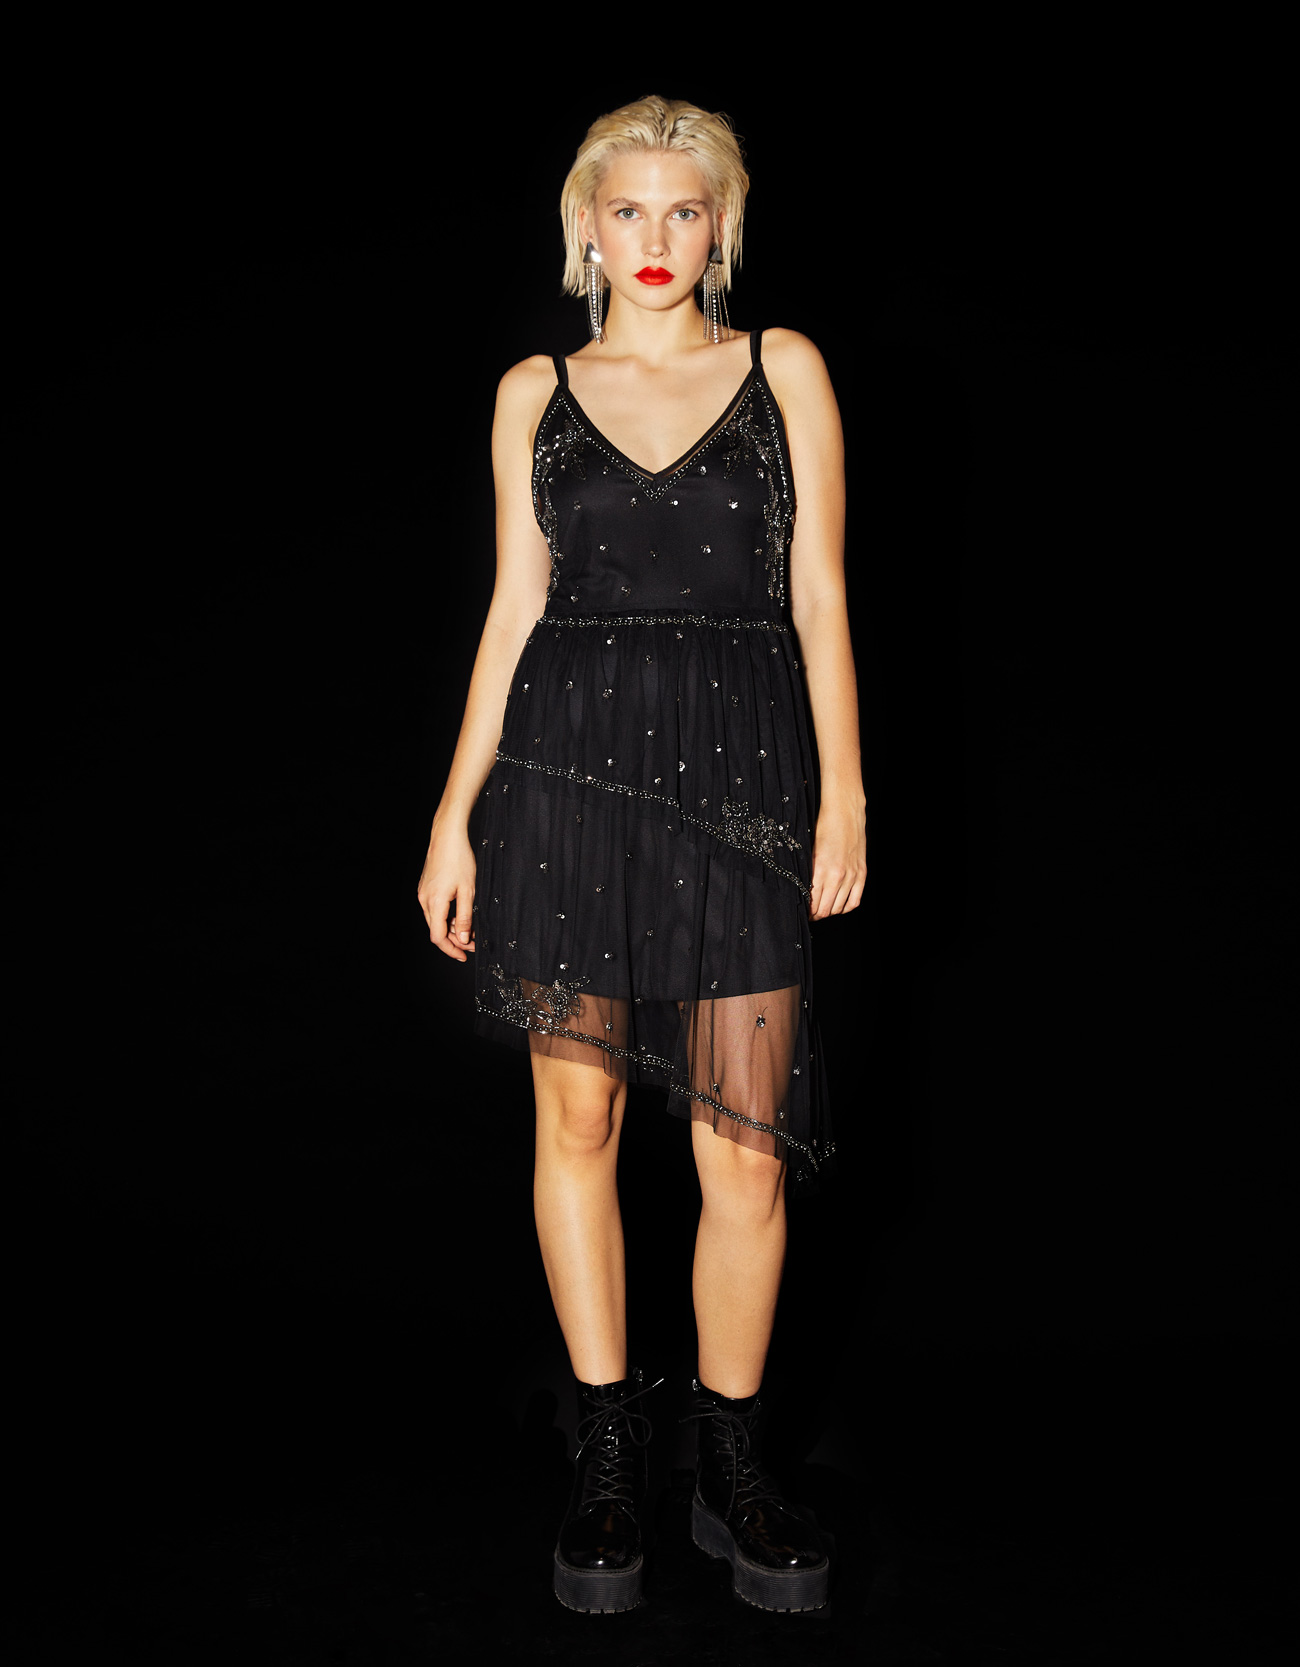 fb3148779a Short dress with embroidery and sequins - Party Collection ...